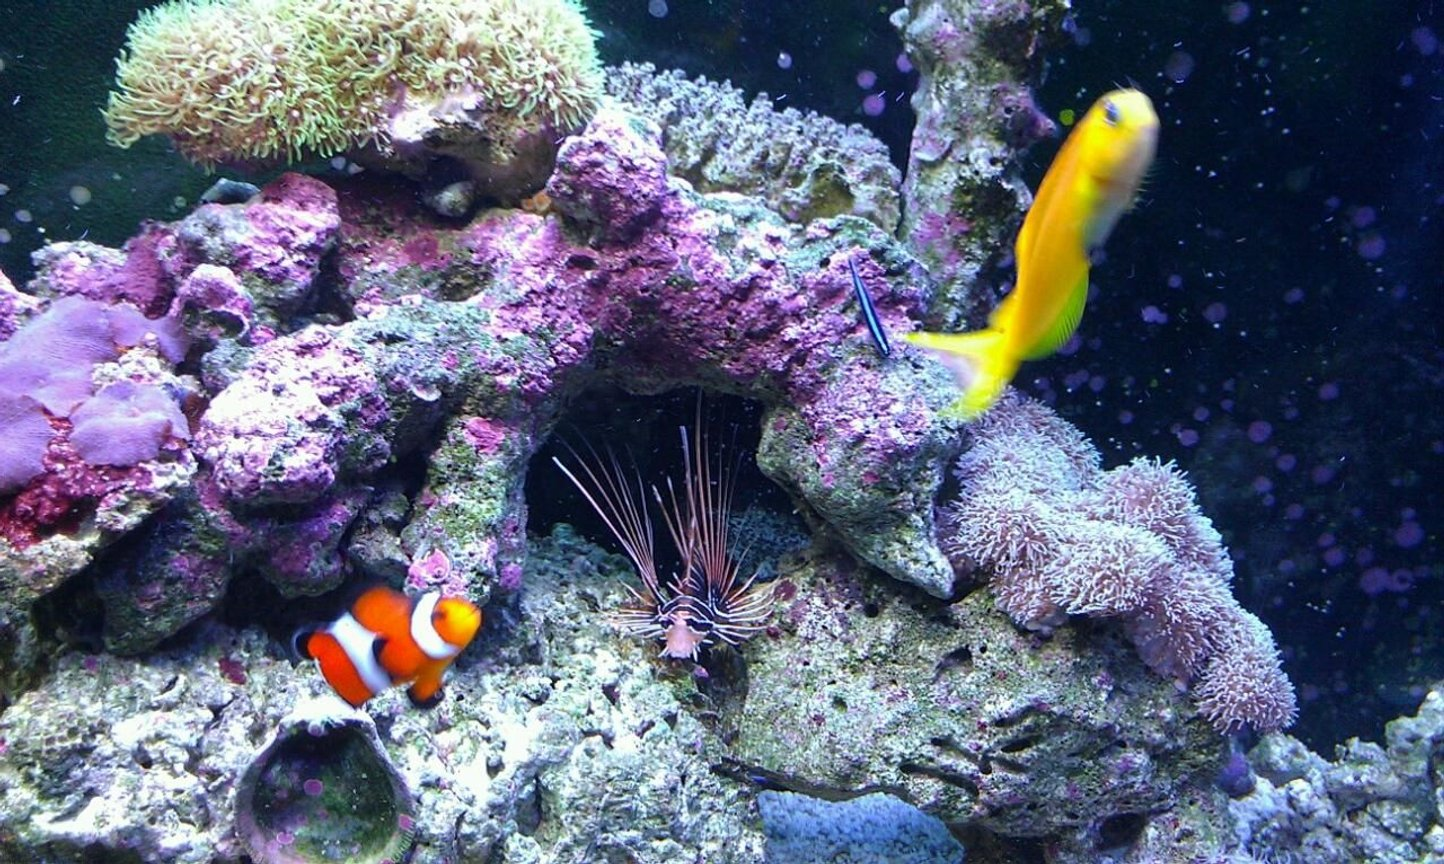 37 gallons saltwater fish tank (mostly fish, little/no live coral) - My kids